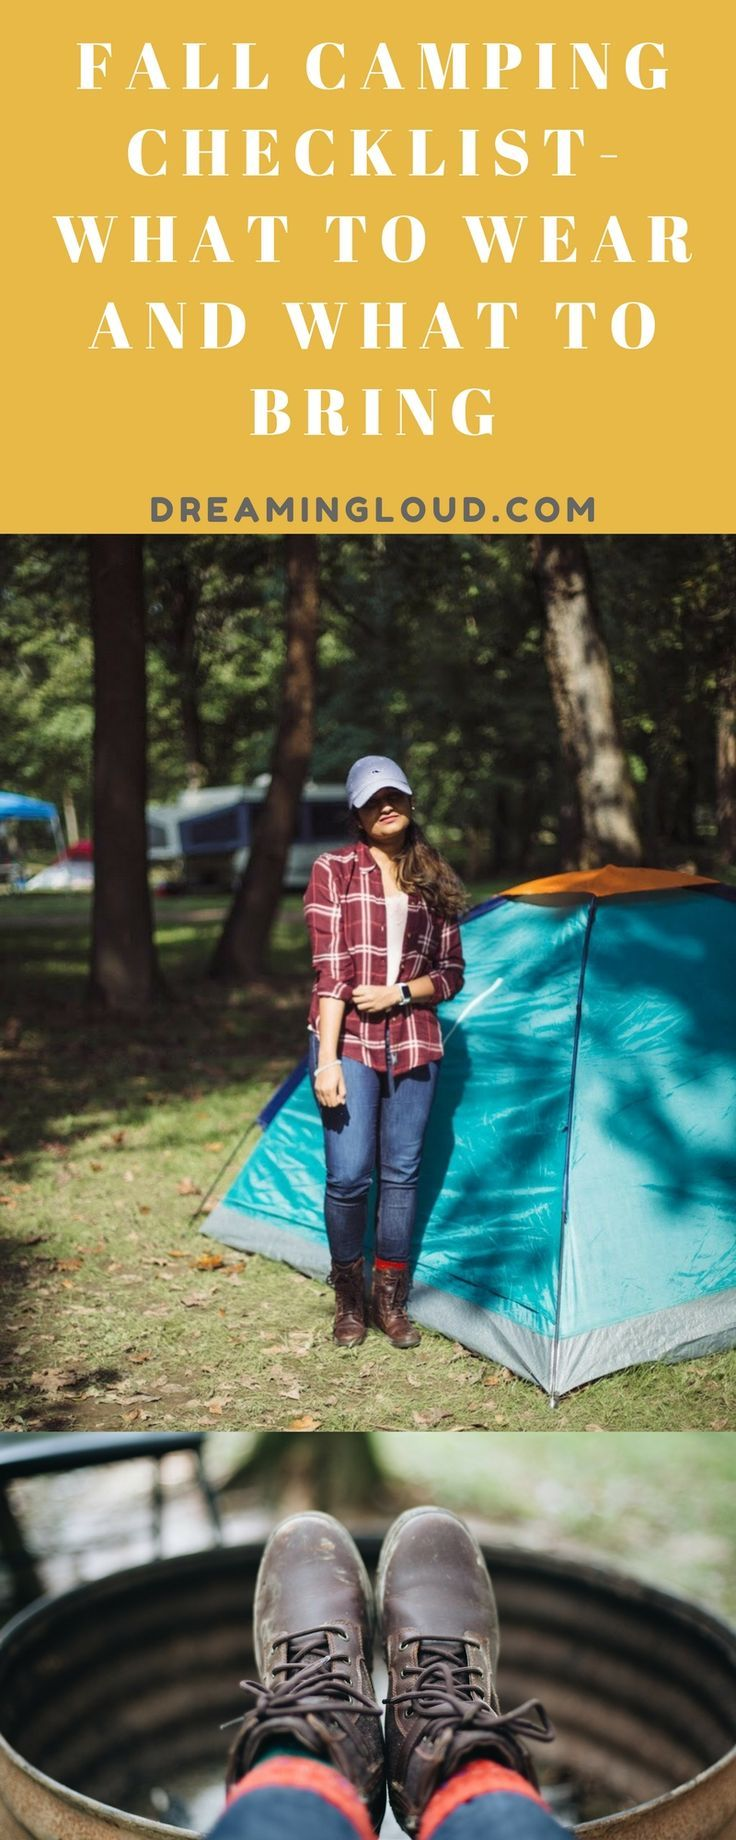 best 25 tent camping checklist ideas on pinterest camping 101